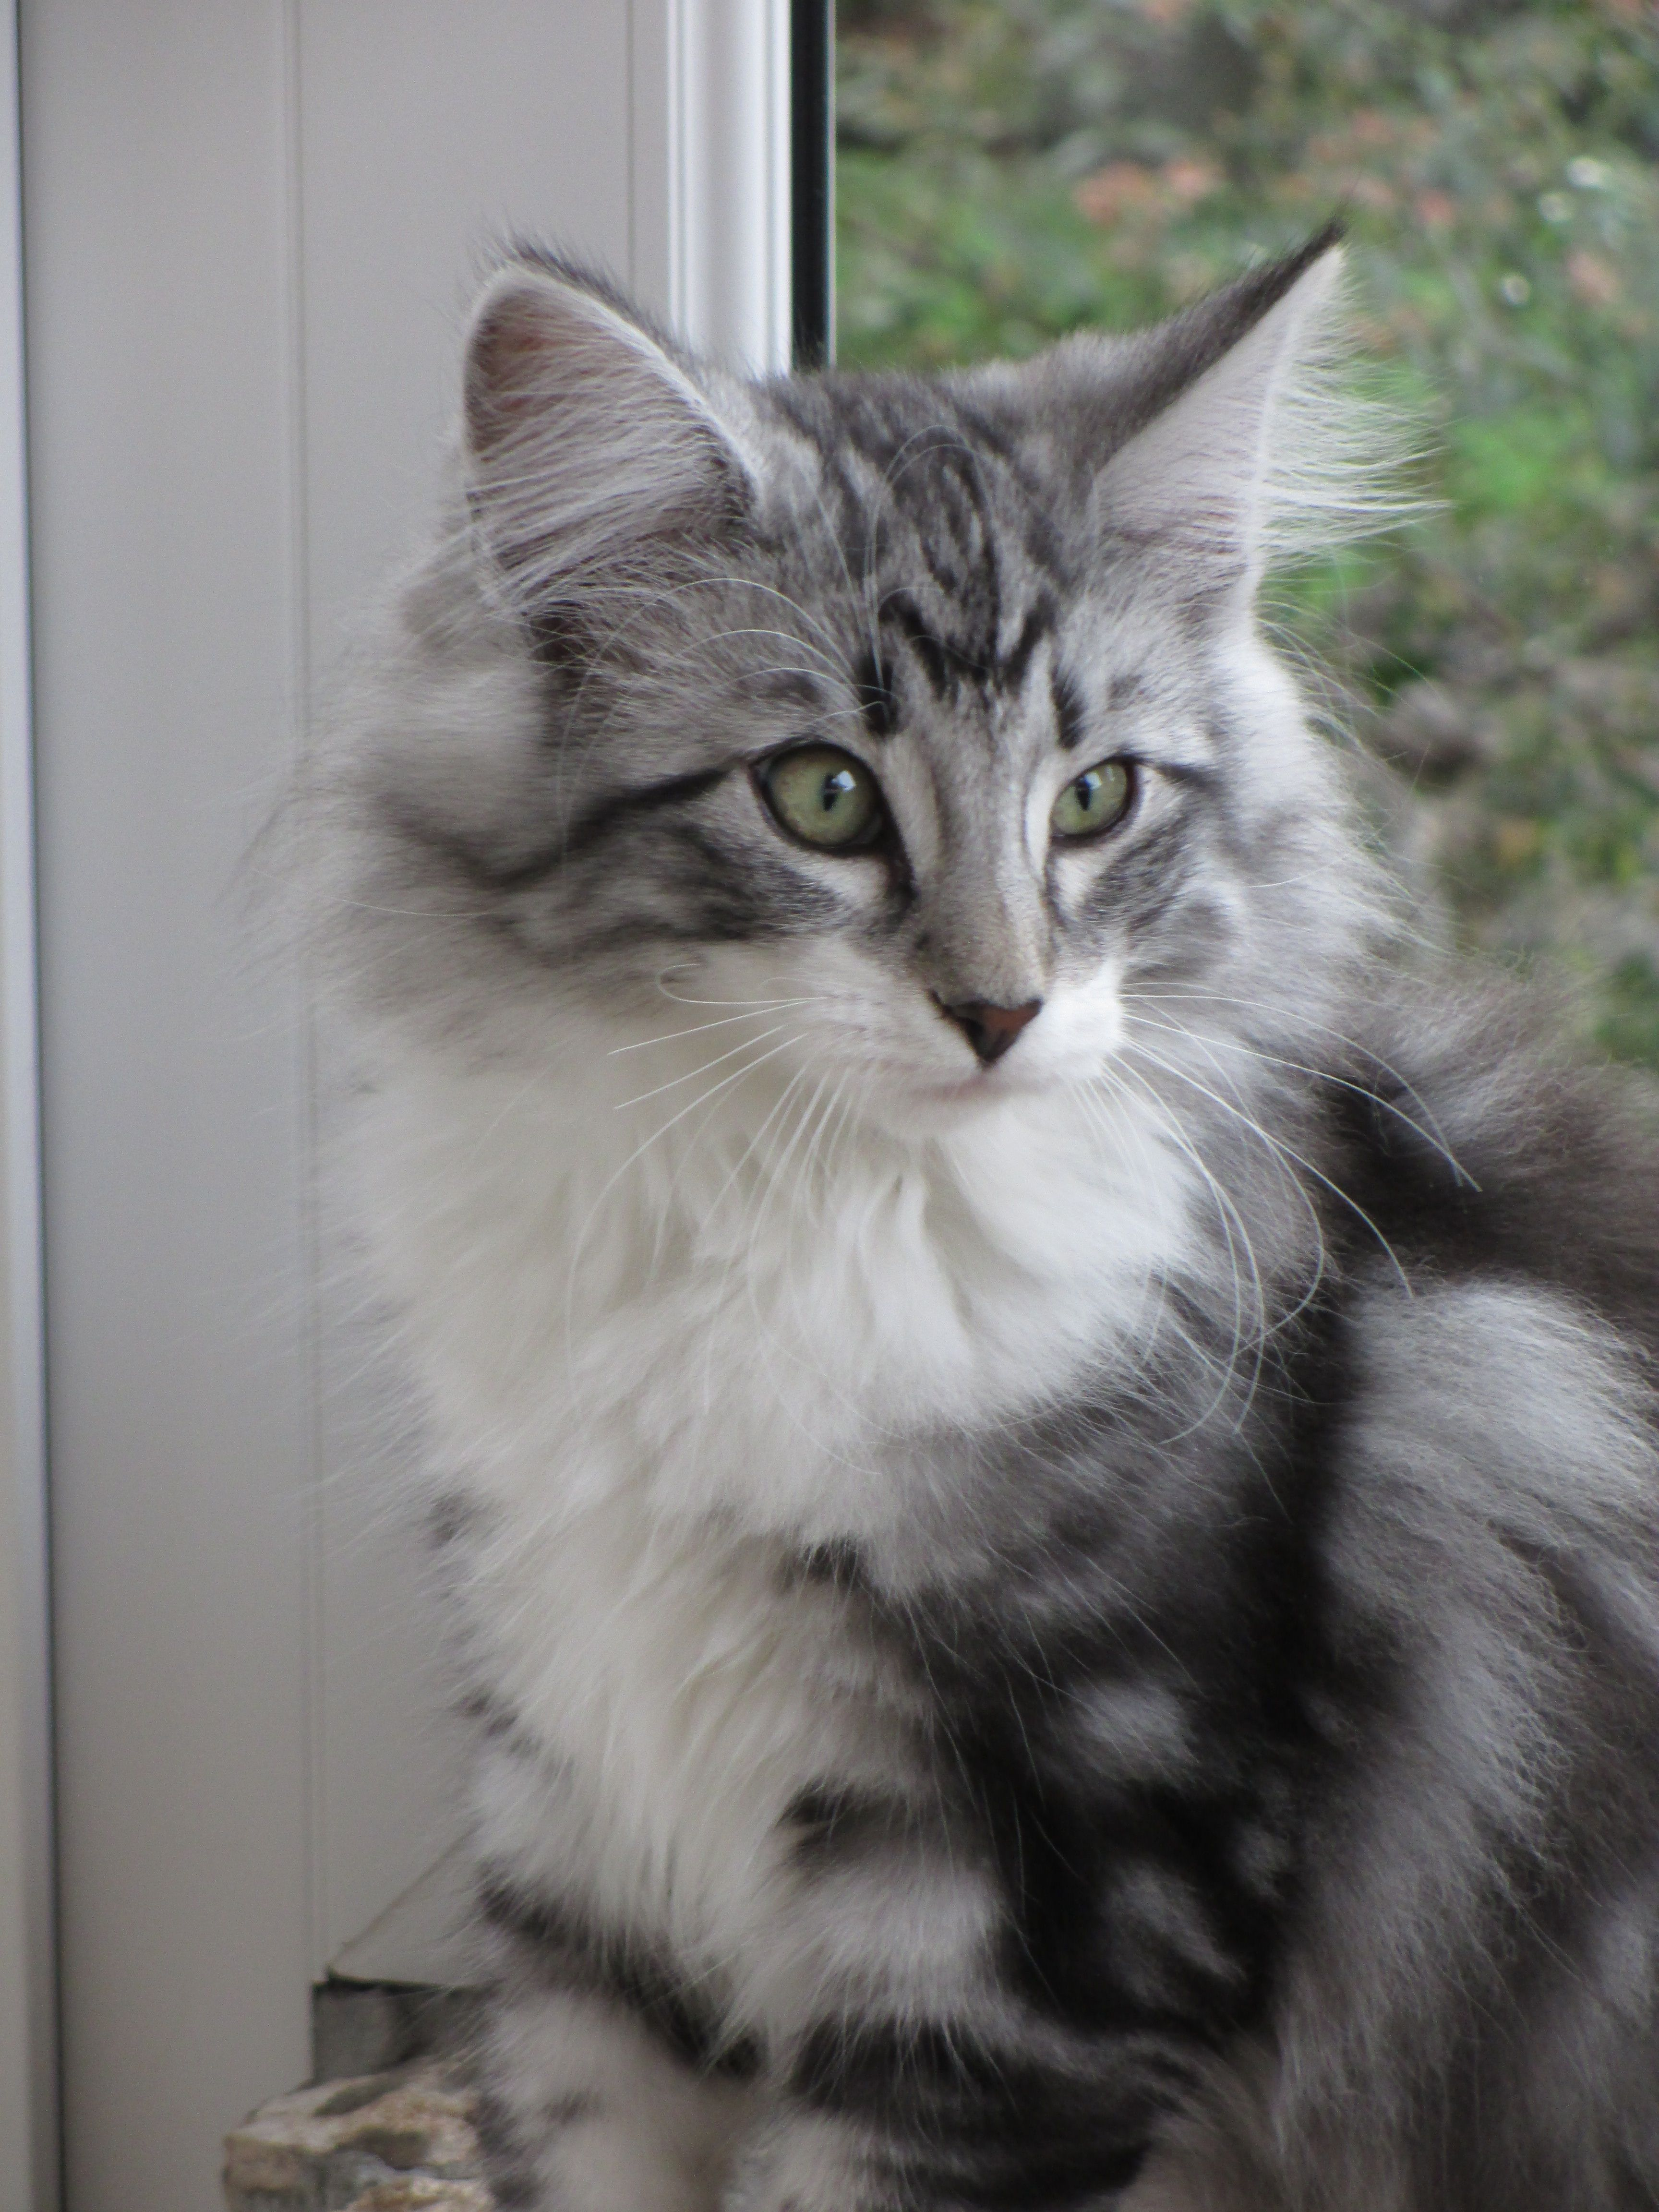 Enero 2014 January 2014 3 Meses 3 Months Old Norwegian Forest Cat Forest Cat Siberian Cat